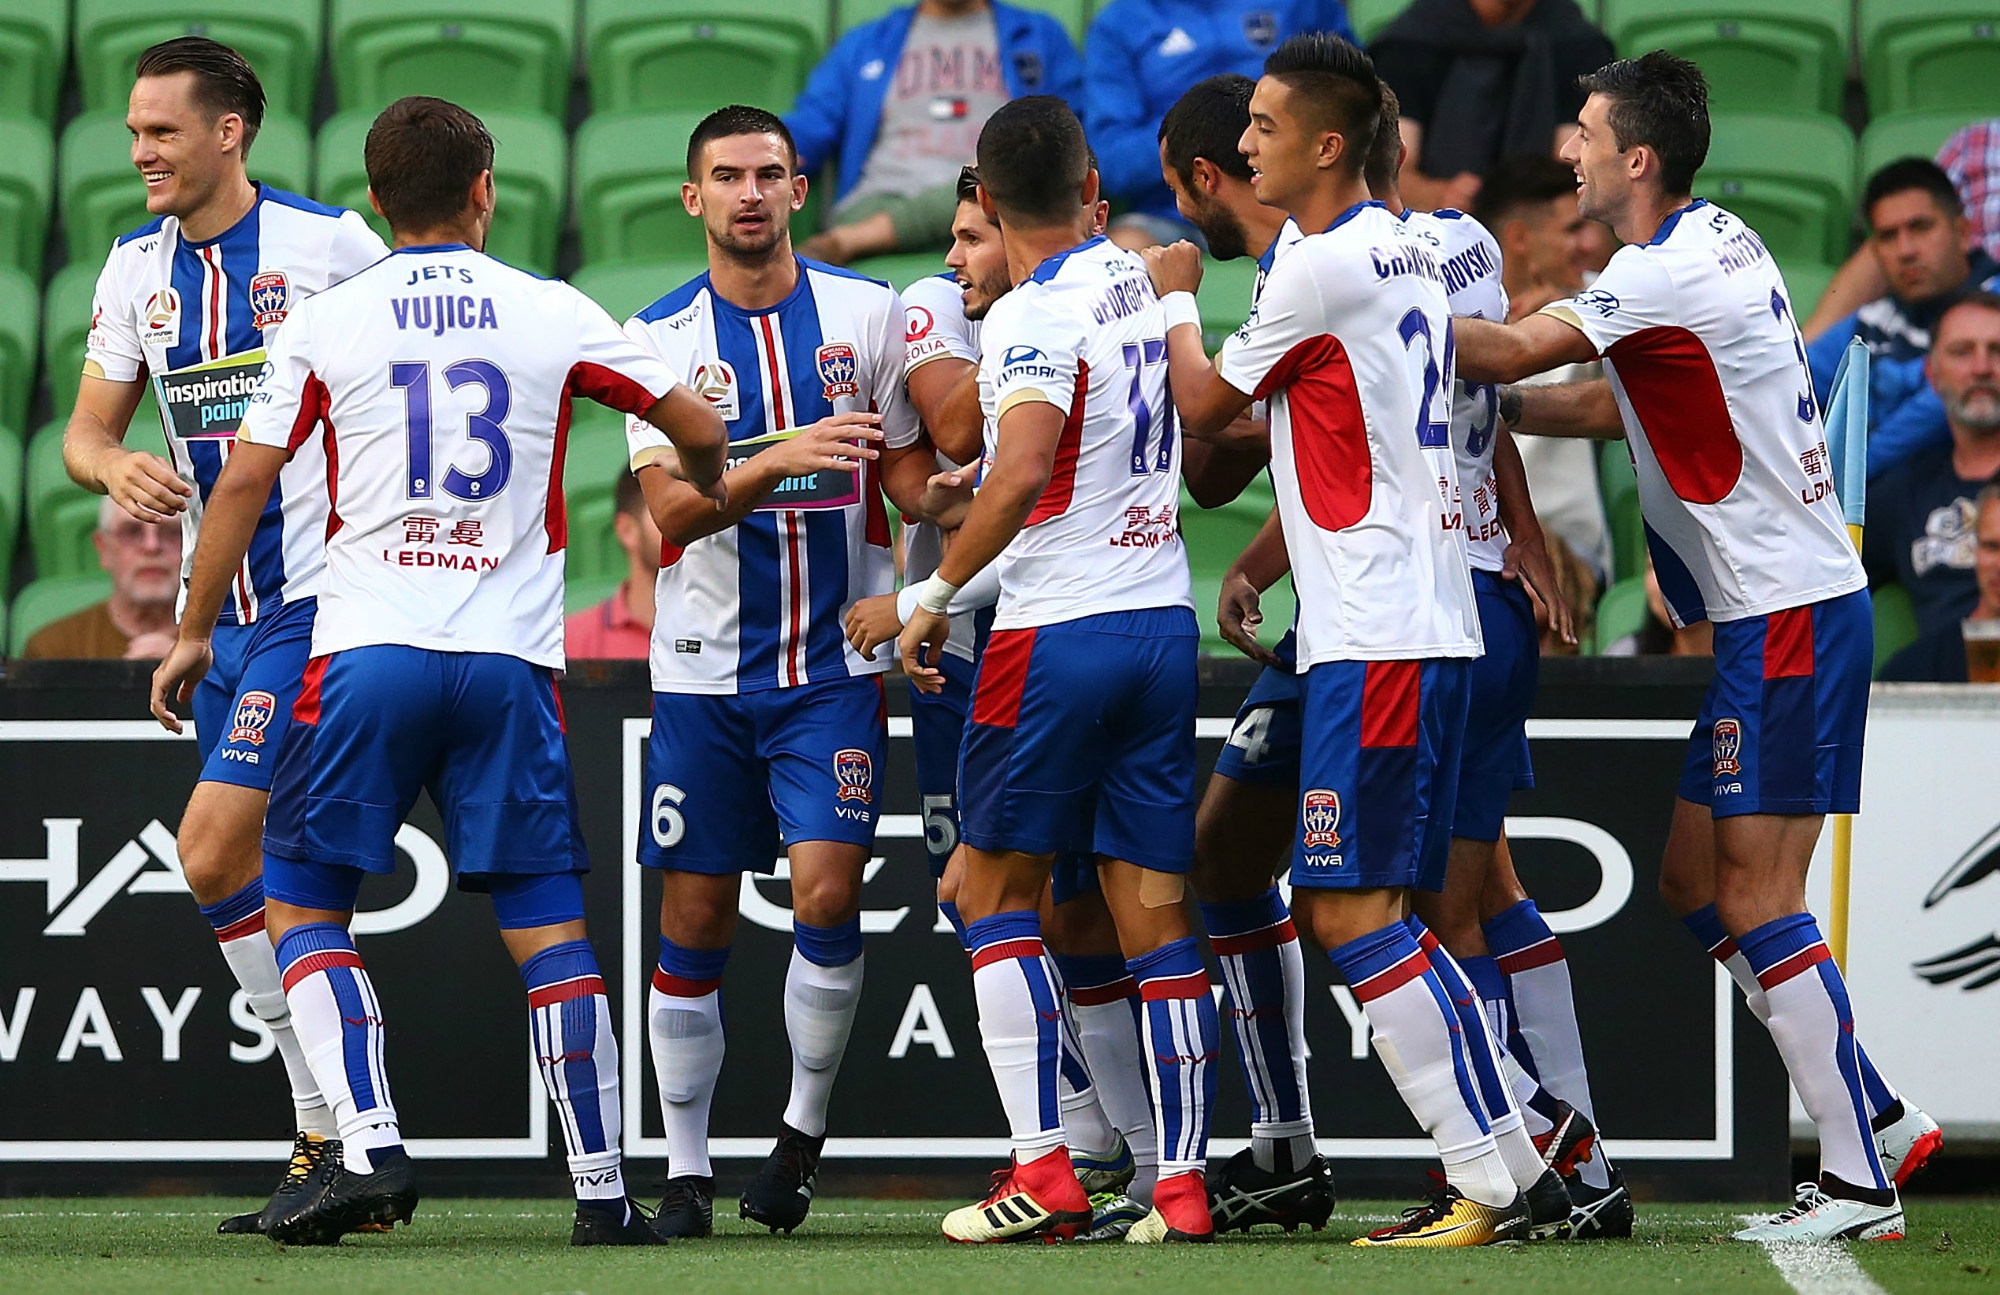 How Boogaard and Topor-Stanley have developed one of the A-League's best partnerships